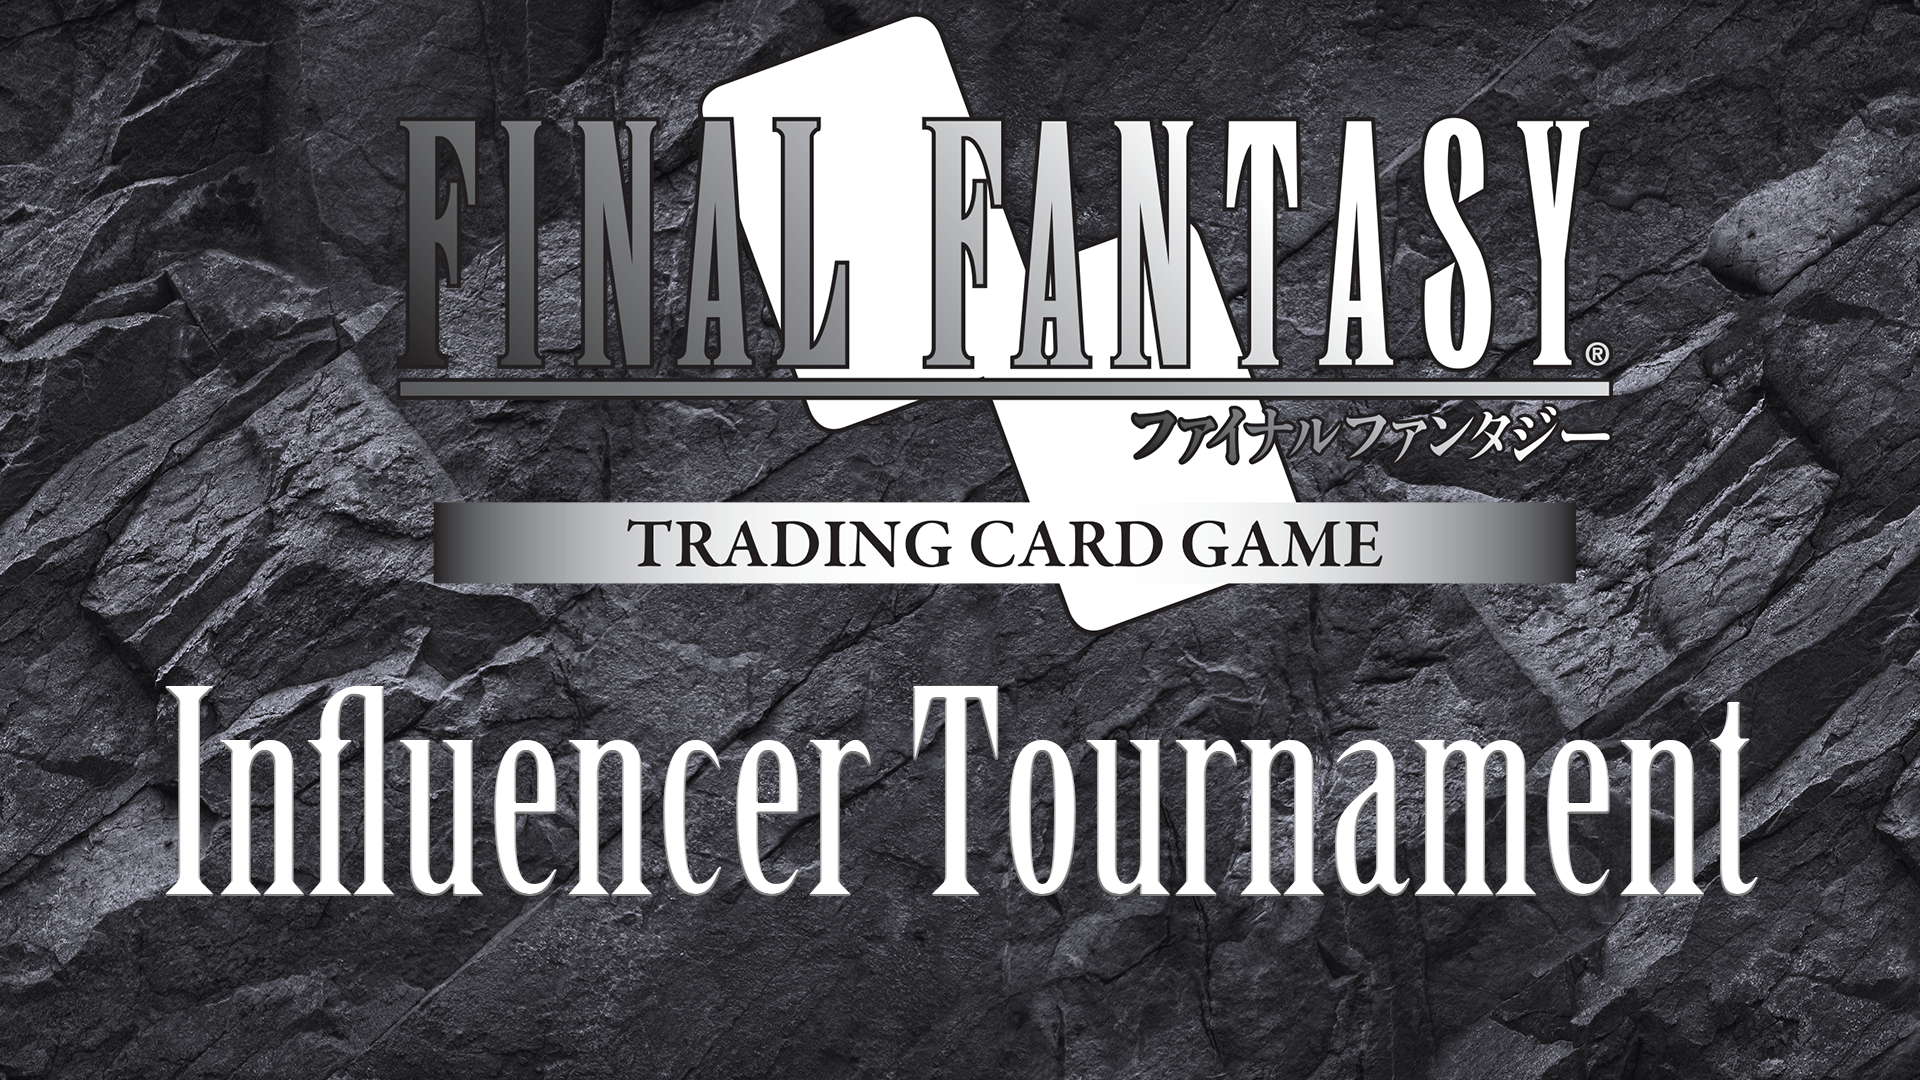 Final Fantasy TCG Video Cup